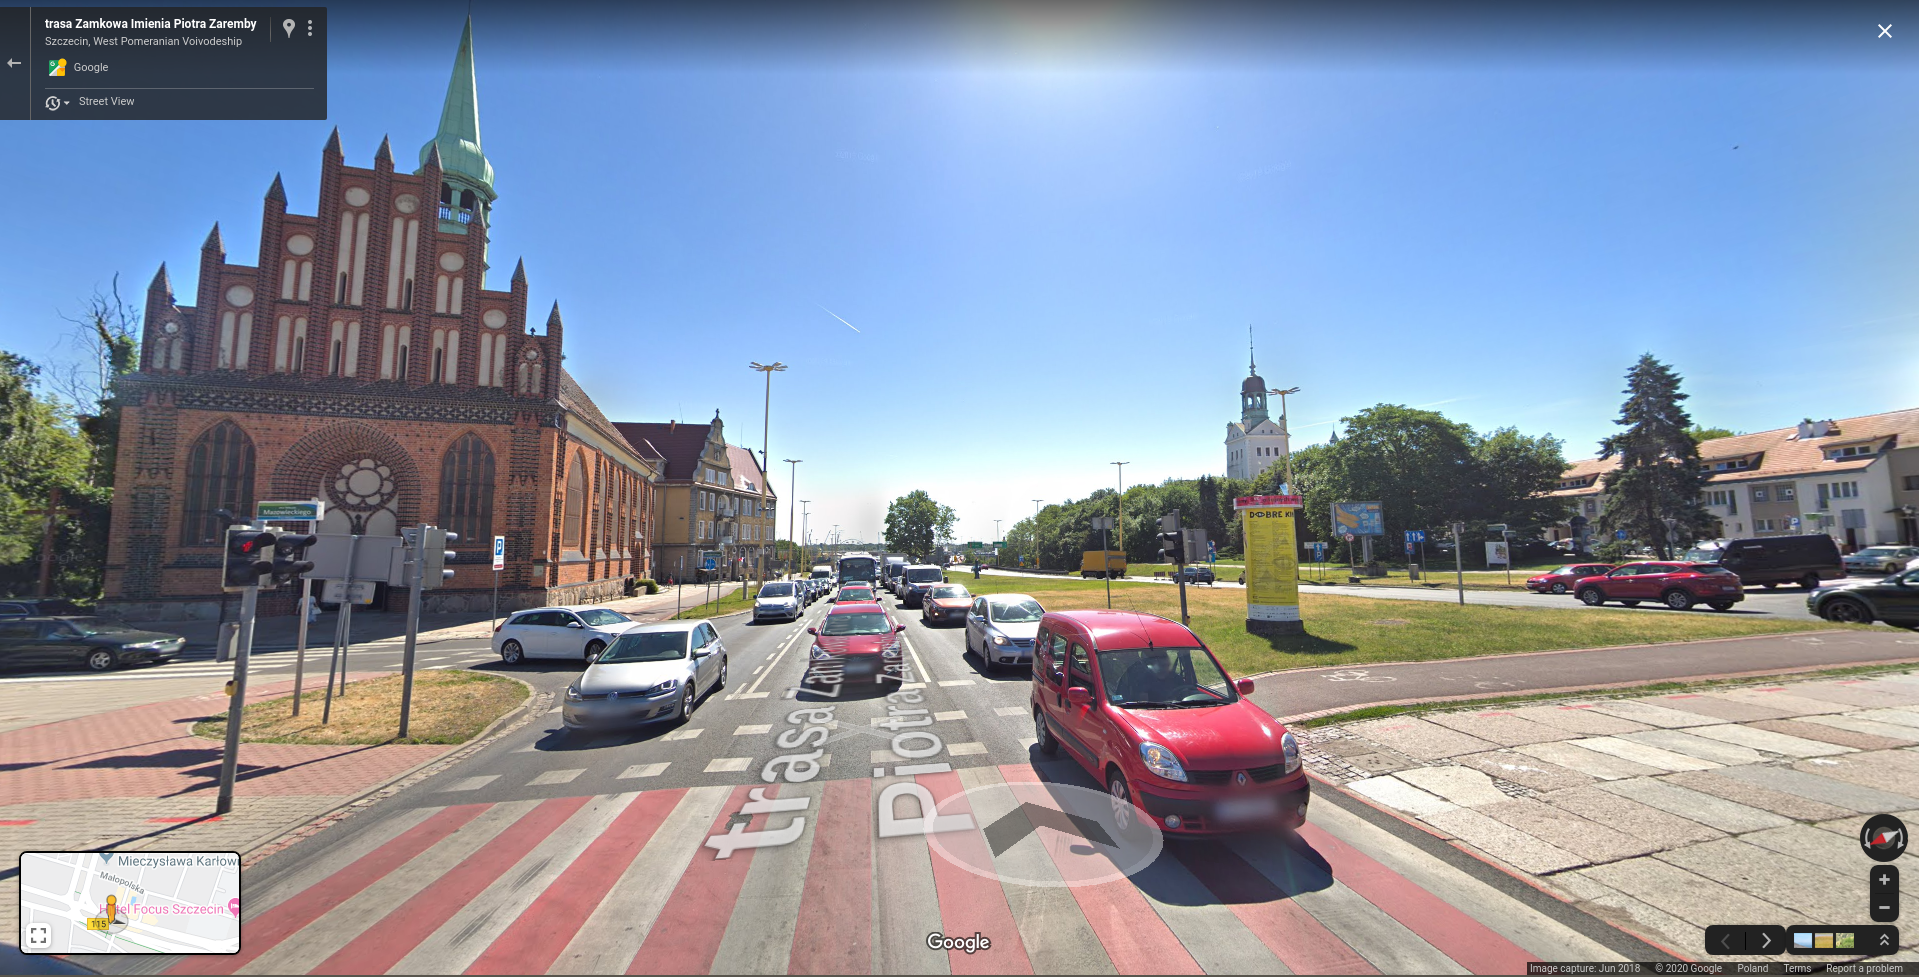 Anonymization results from Google Street View